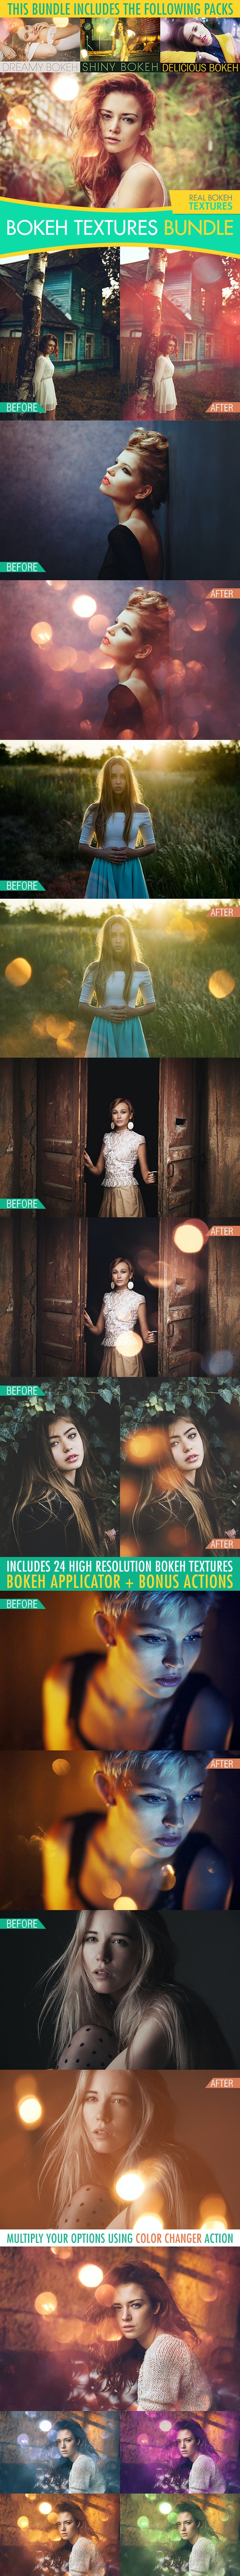 Bokeh Textures and Actions Bundle  - Photo Effects Actions